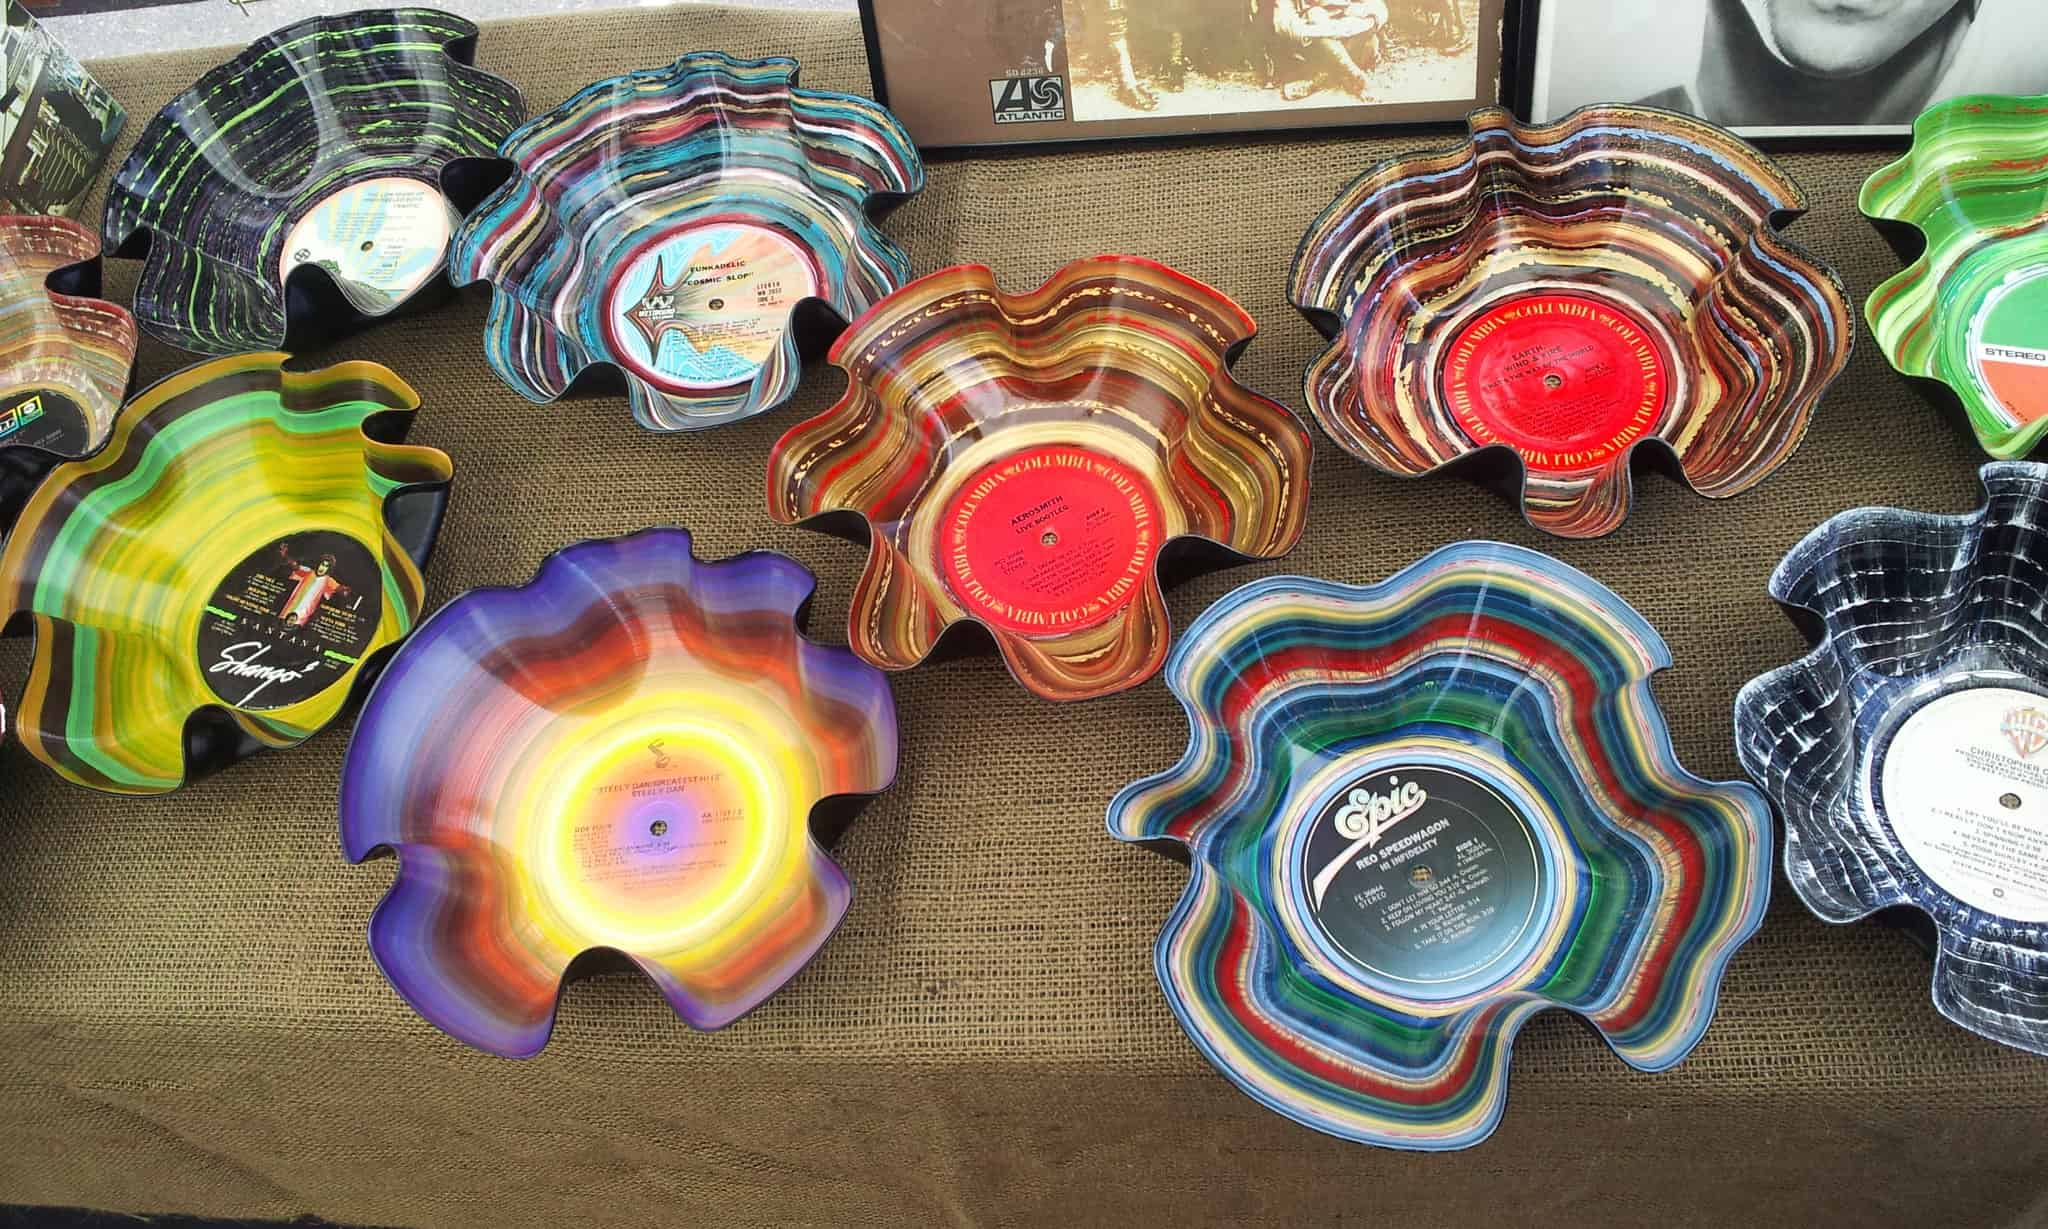 Psychedelic Record Bowls